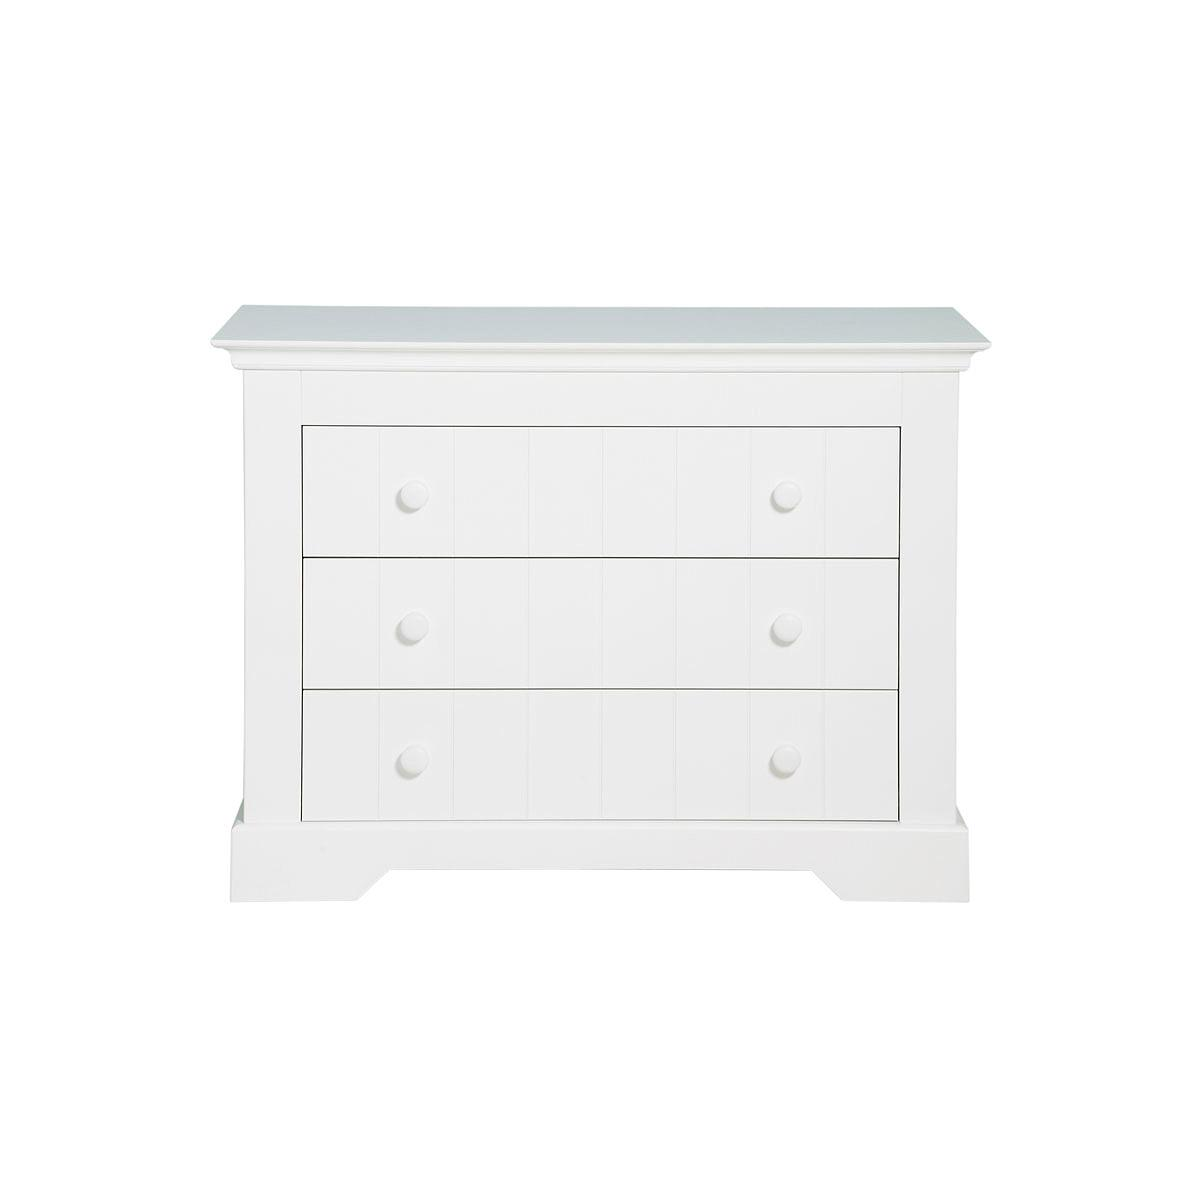 NARBONNE by Bopita Commode 3 tiroirs